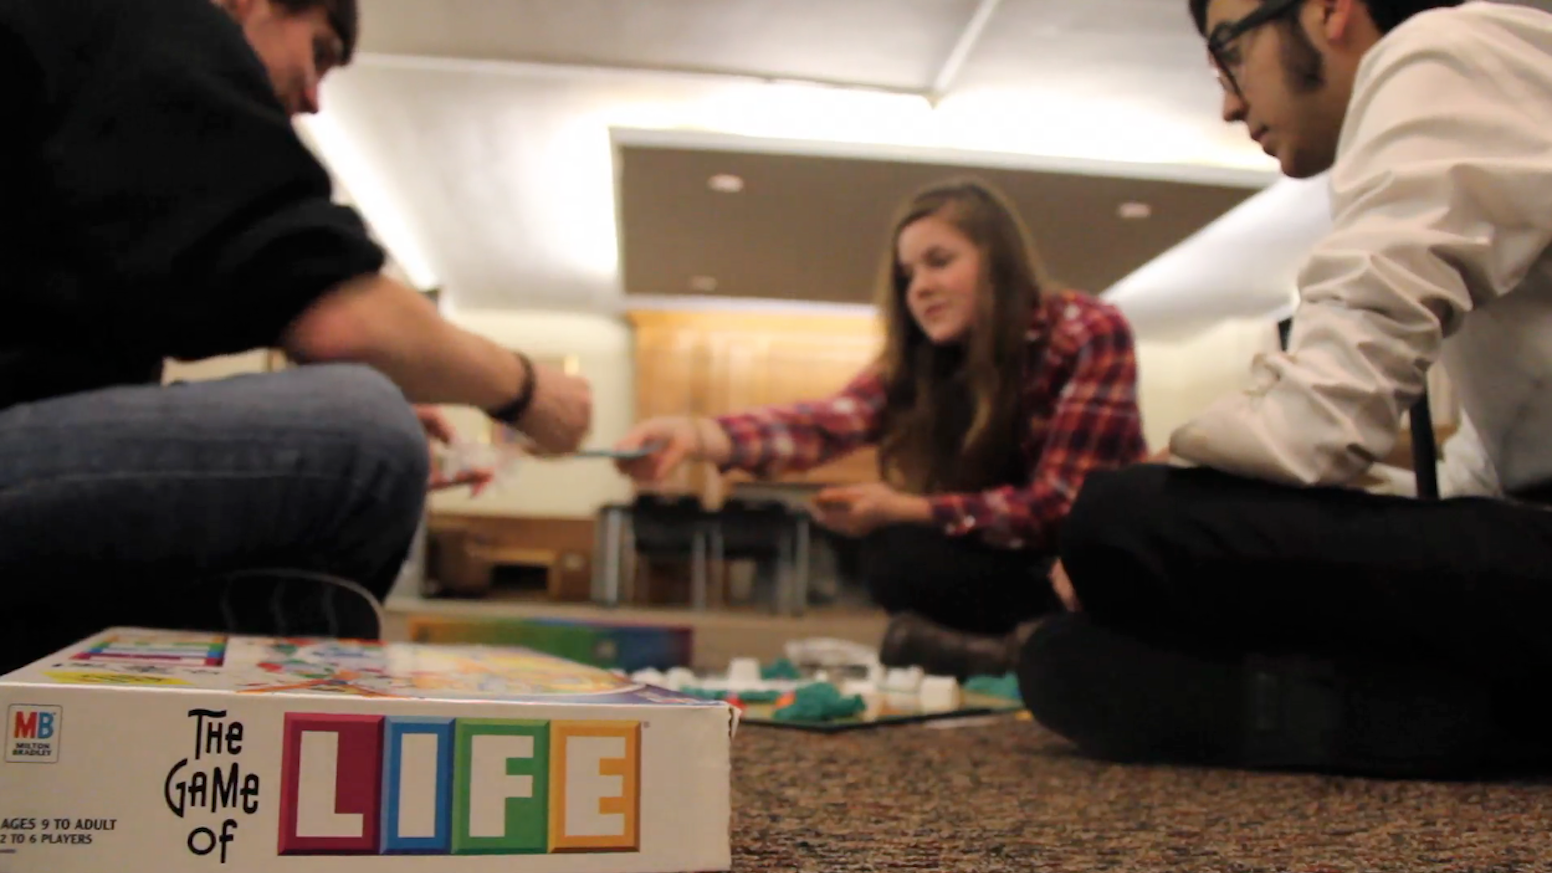 How to Win the Game of Life